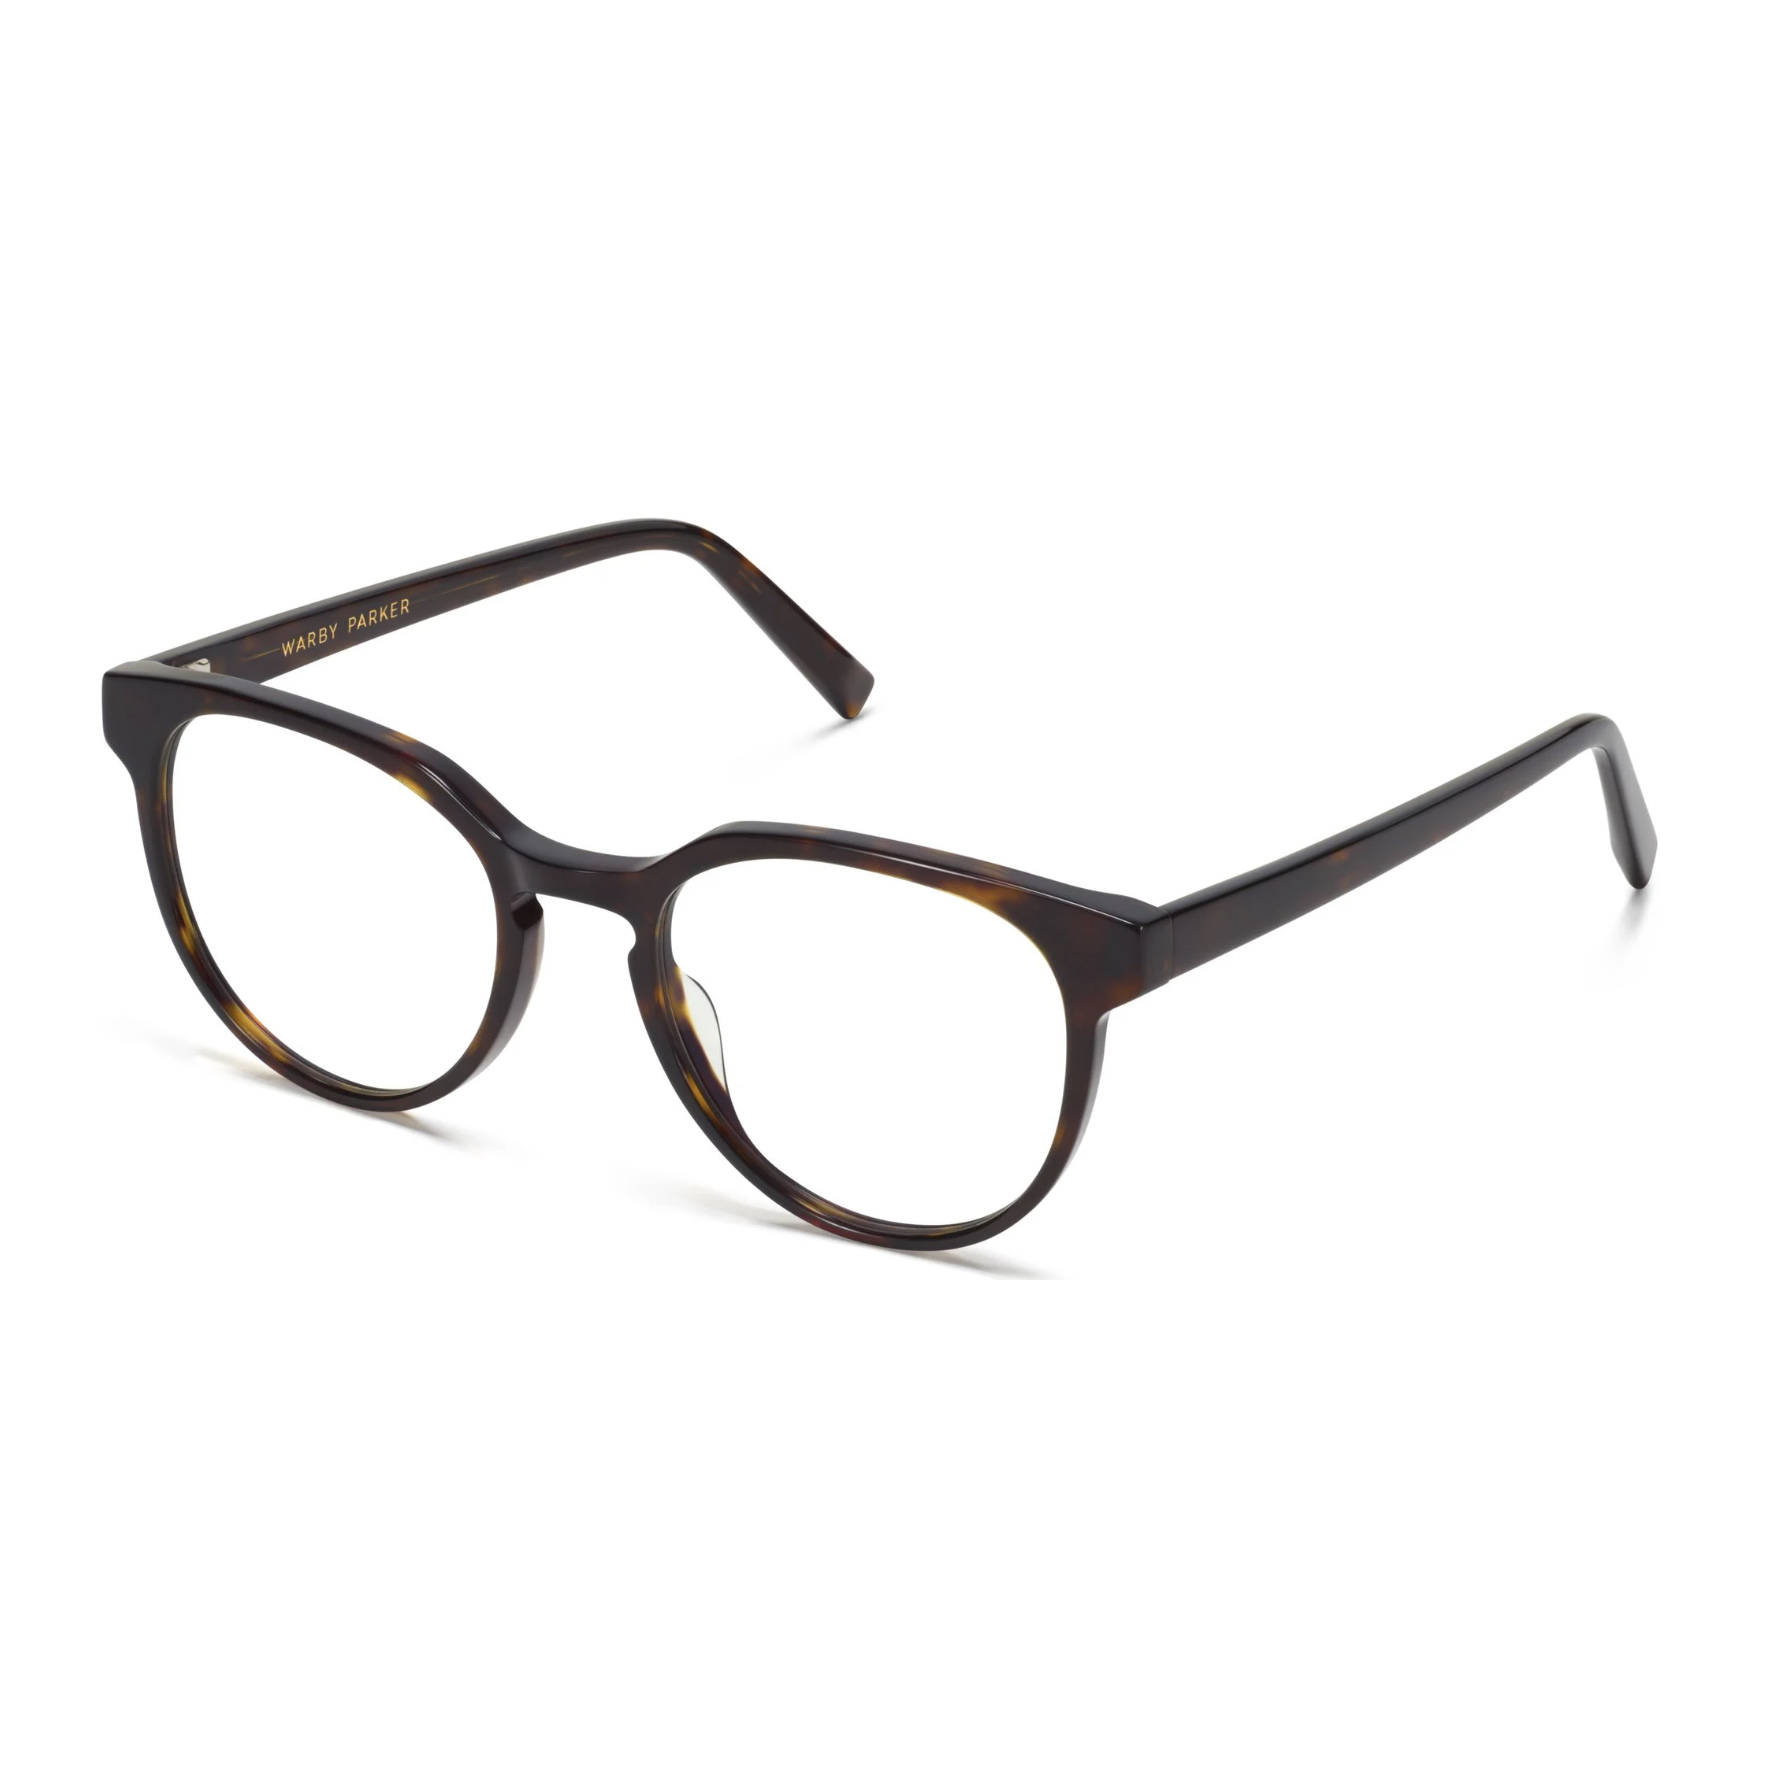 Warby Parker Wright Glasses